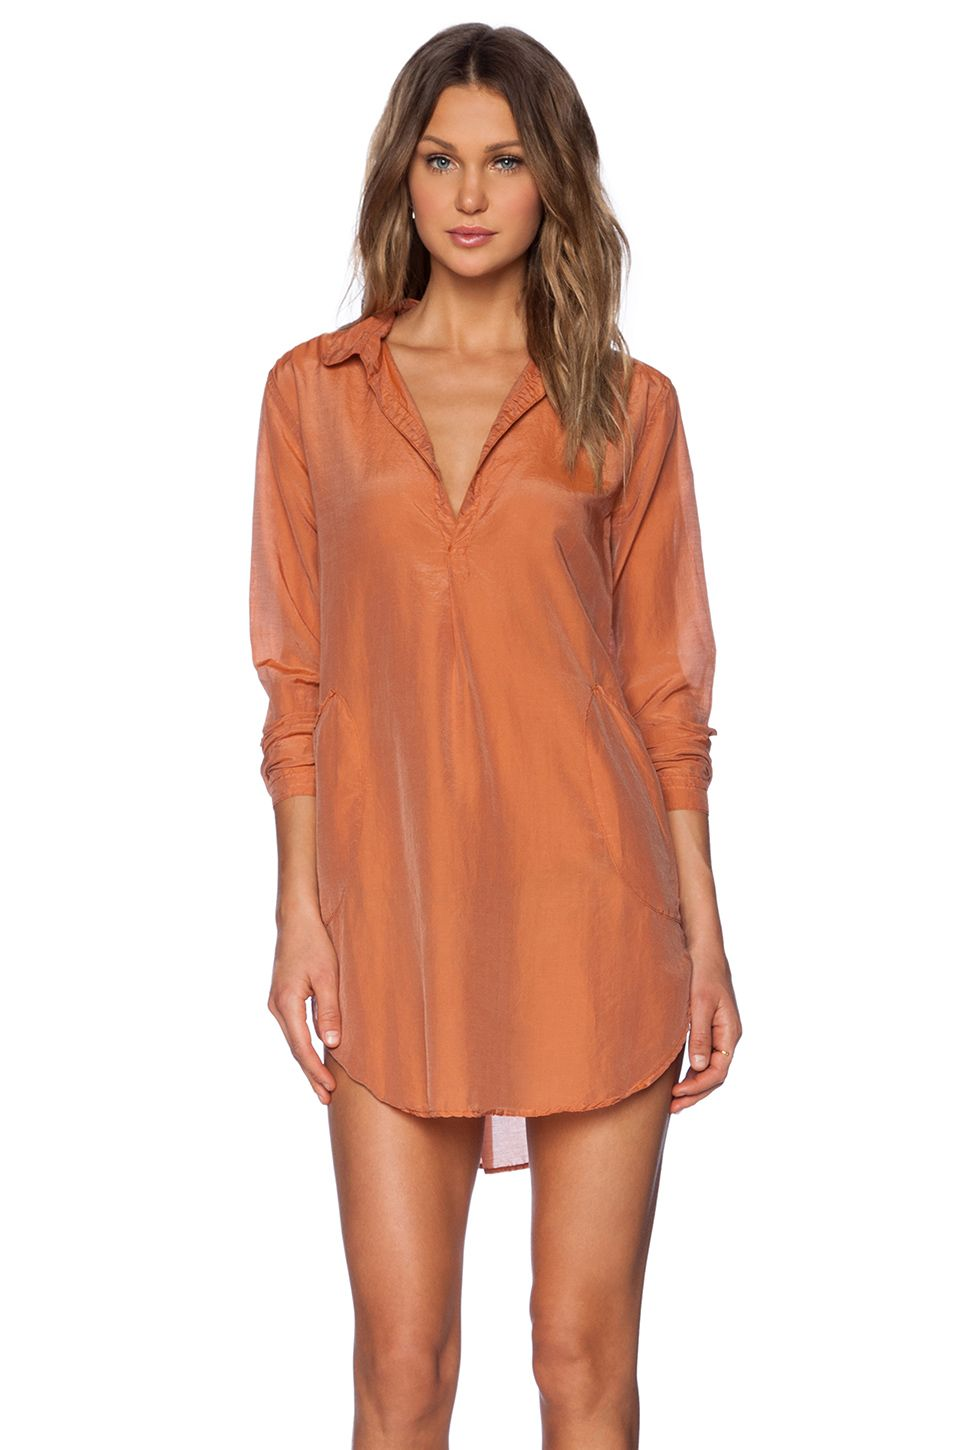 824f2ac0f72 CP SHADES Teton Tunic in Sunset | Revolve Clothing | Revolve ...